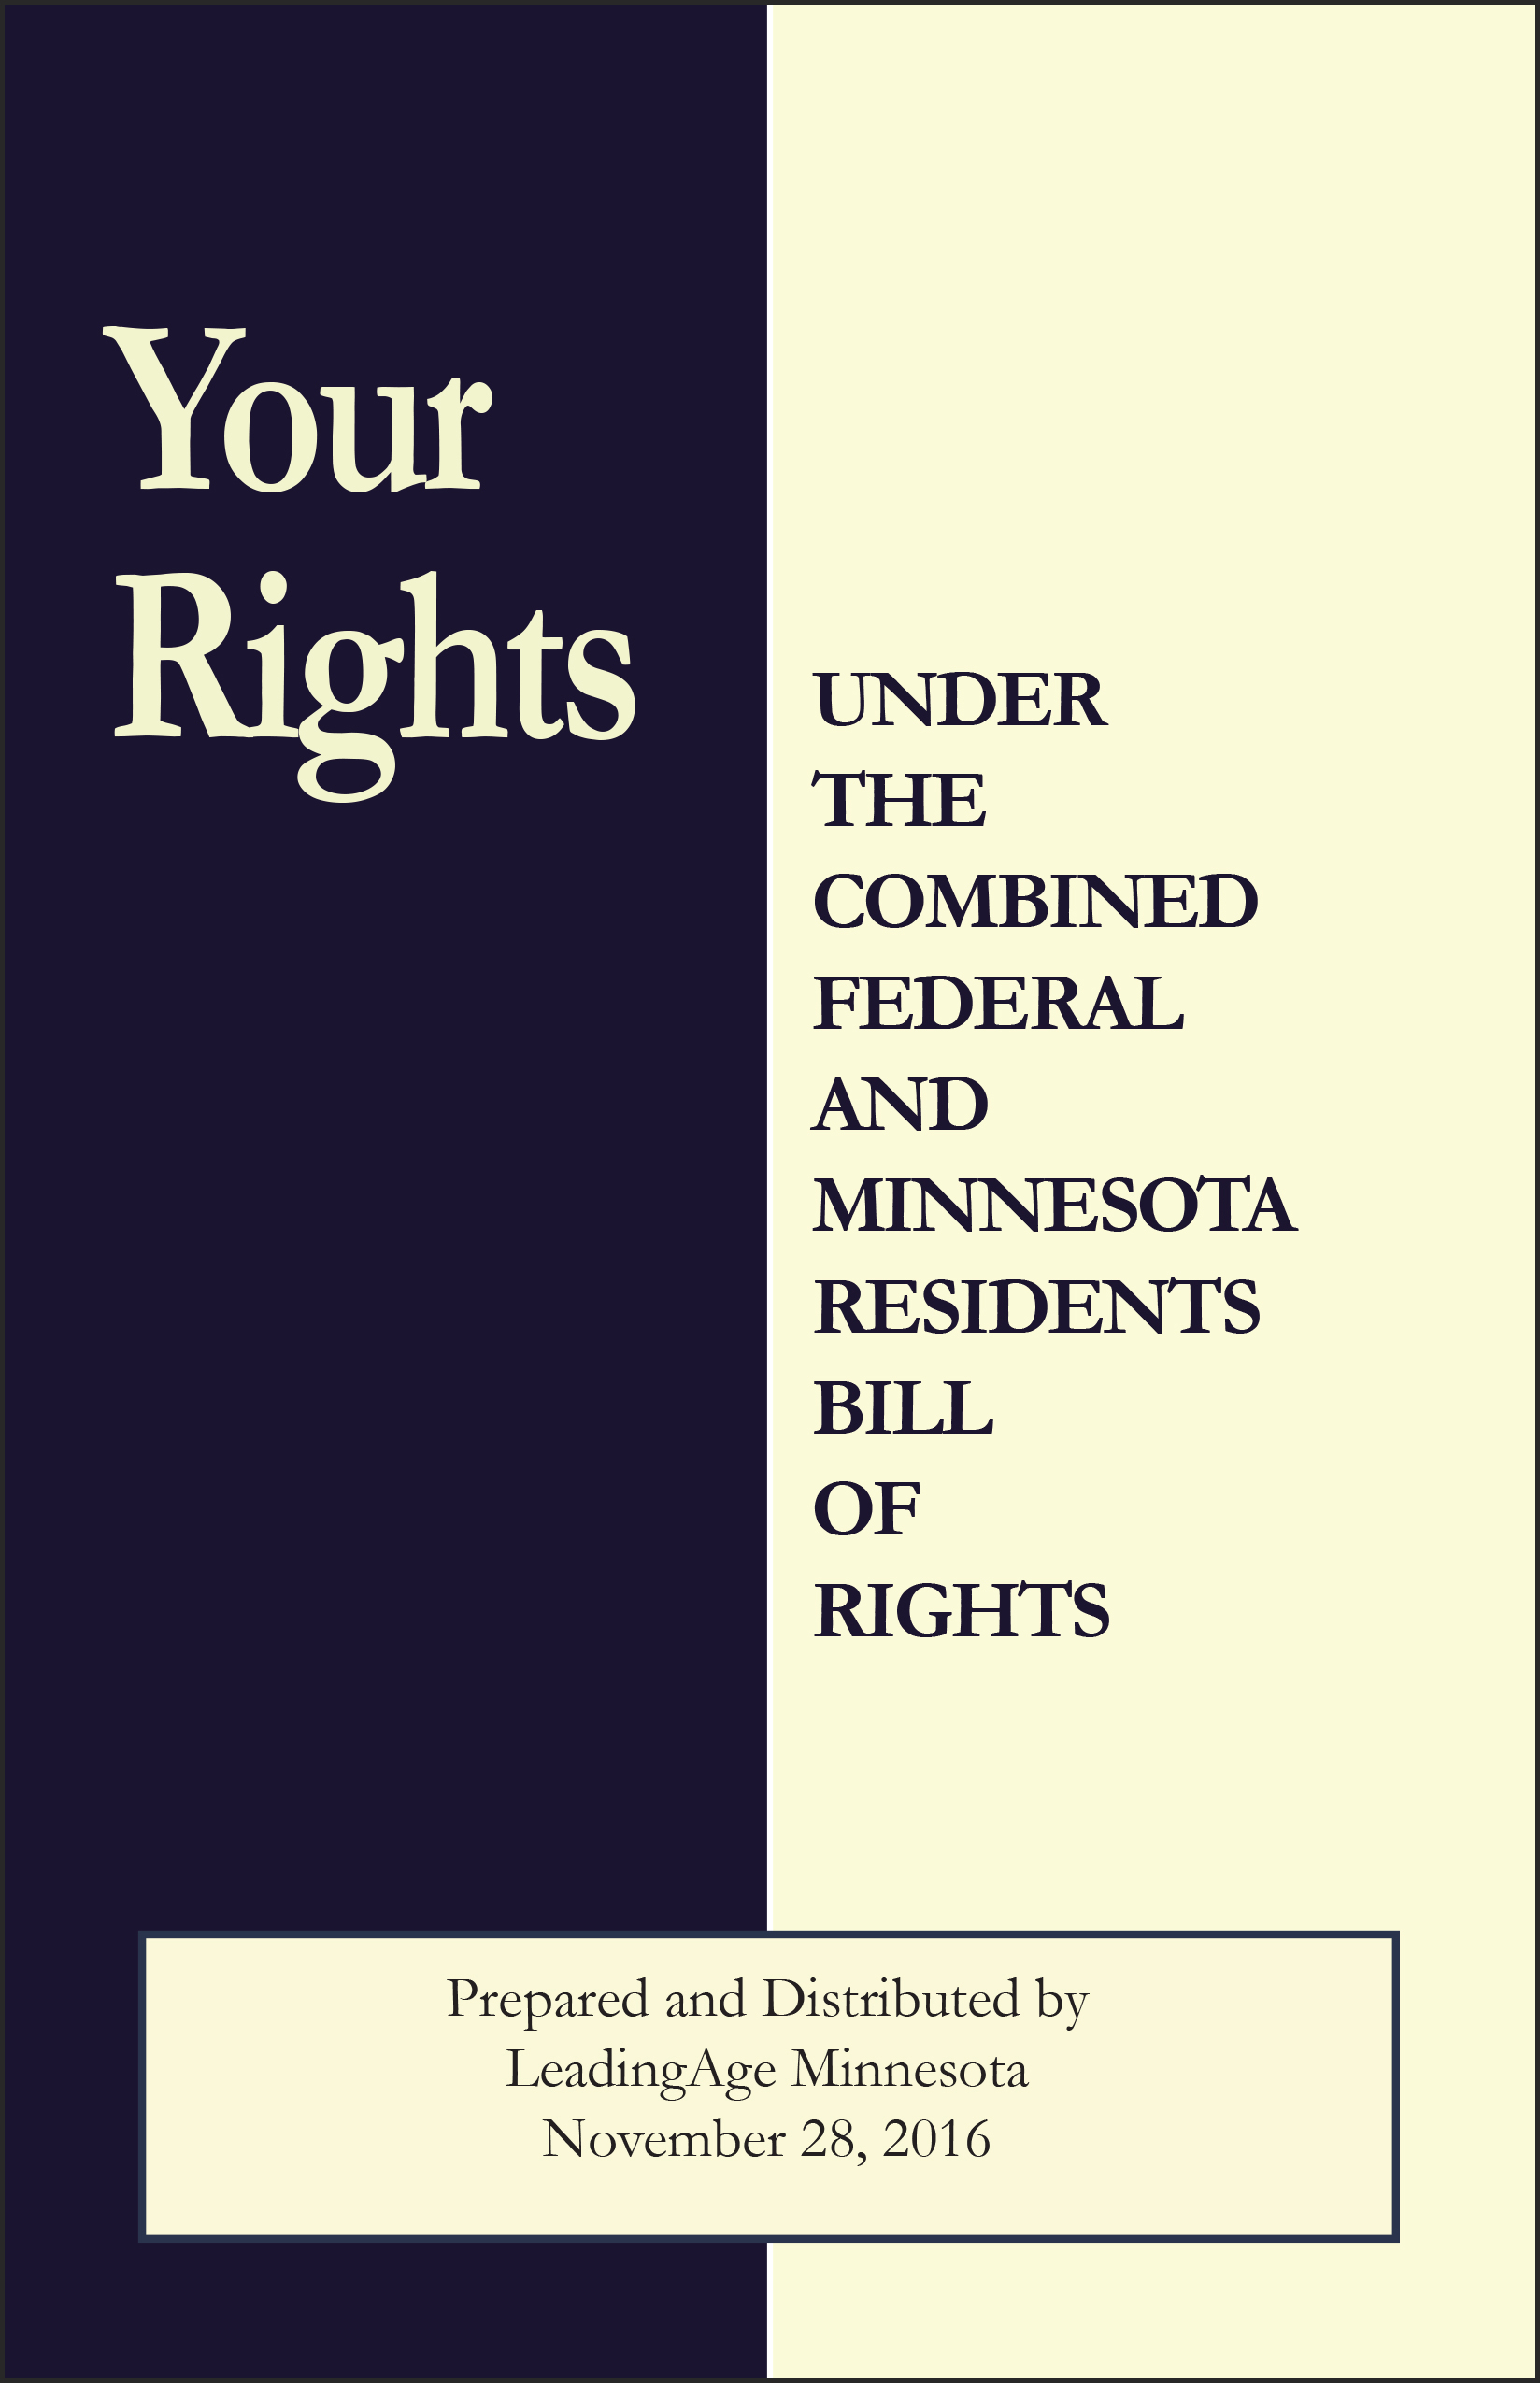 UDPATED -BOR1075 Comb MN & Fed. NH  Residents Bill of Rights